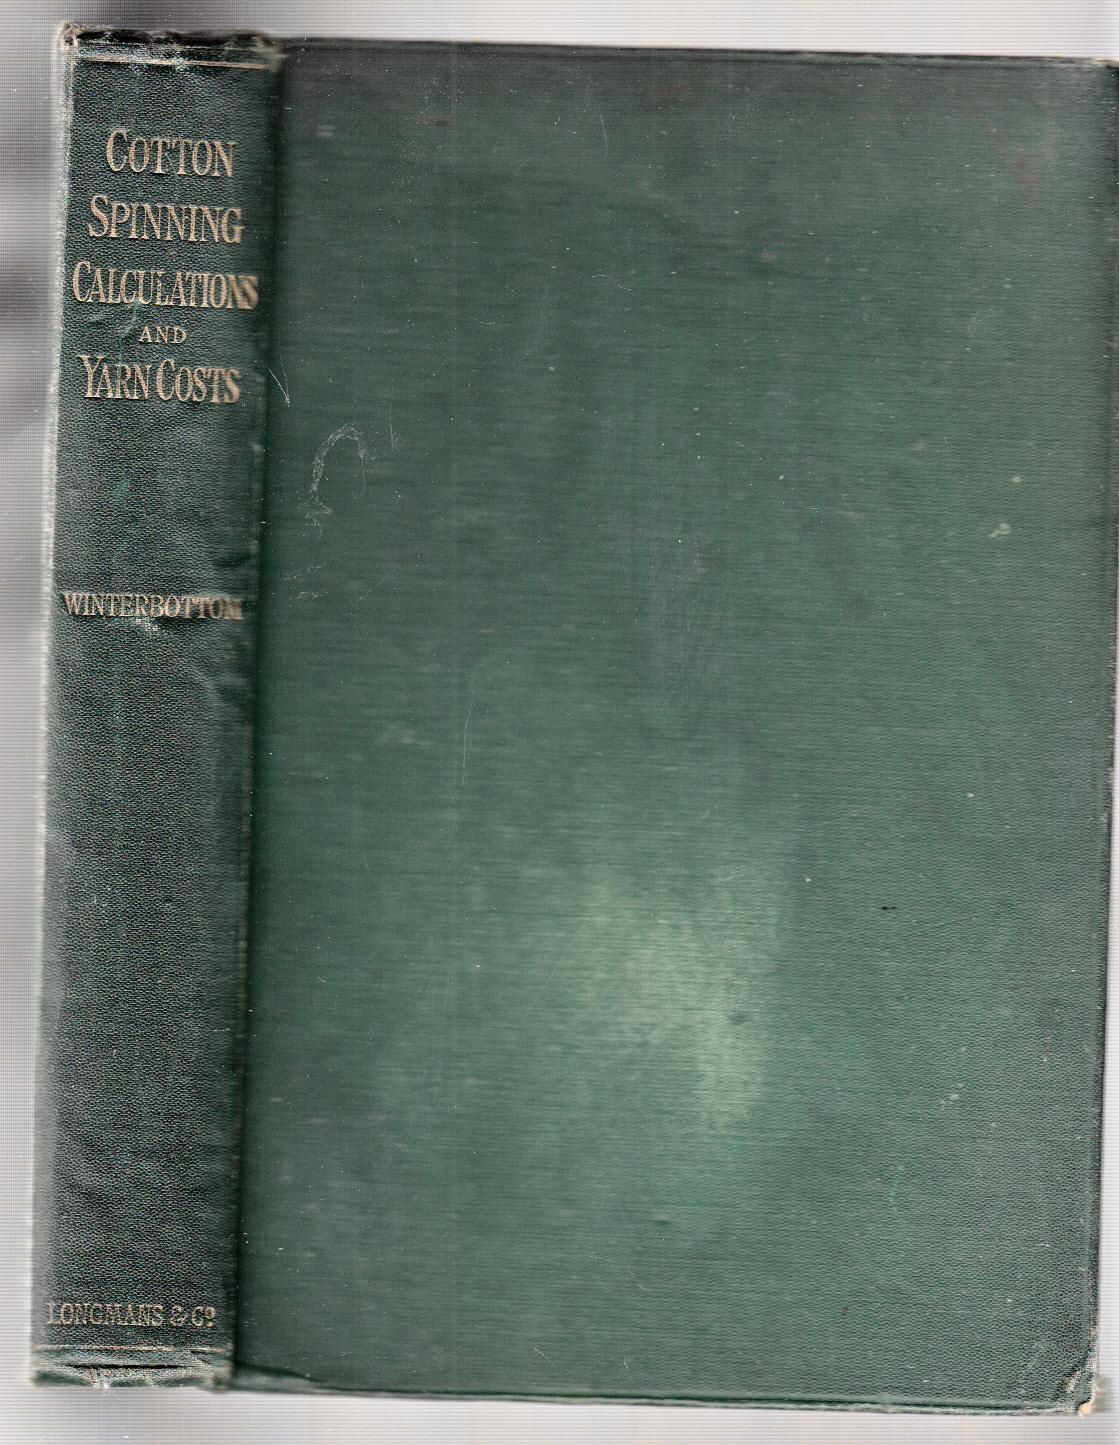 Cotton Spinning Calculations And Yarn Costs A Practical And Comprehensive Manual Of